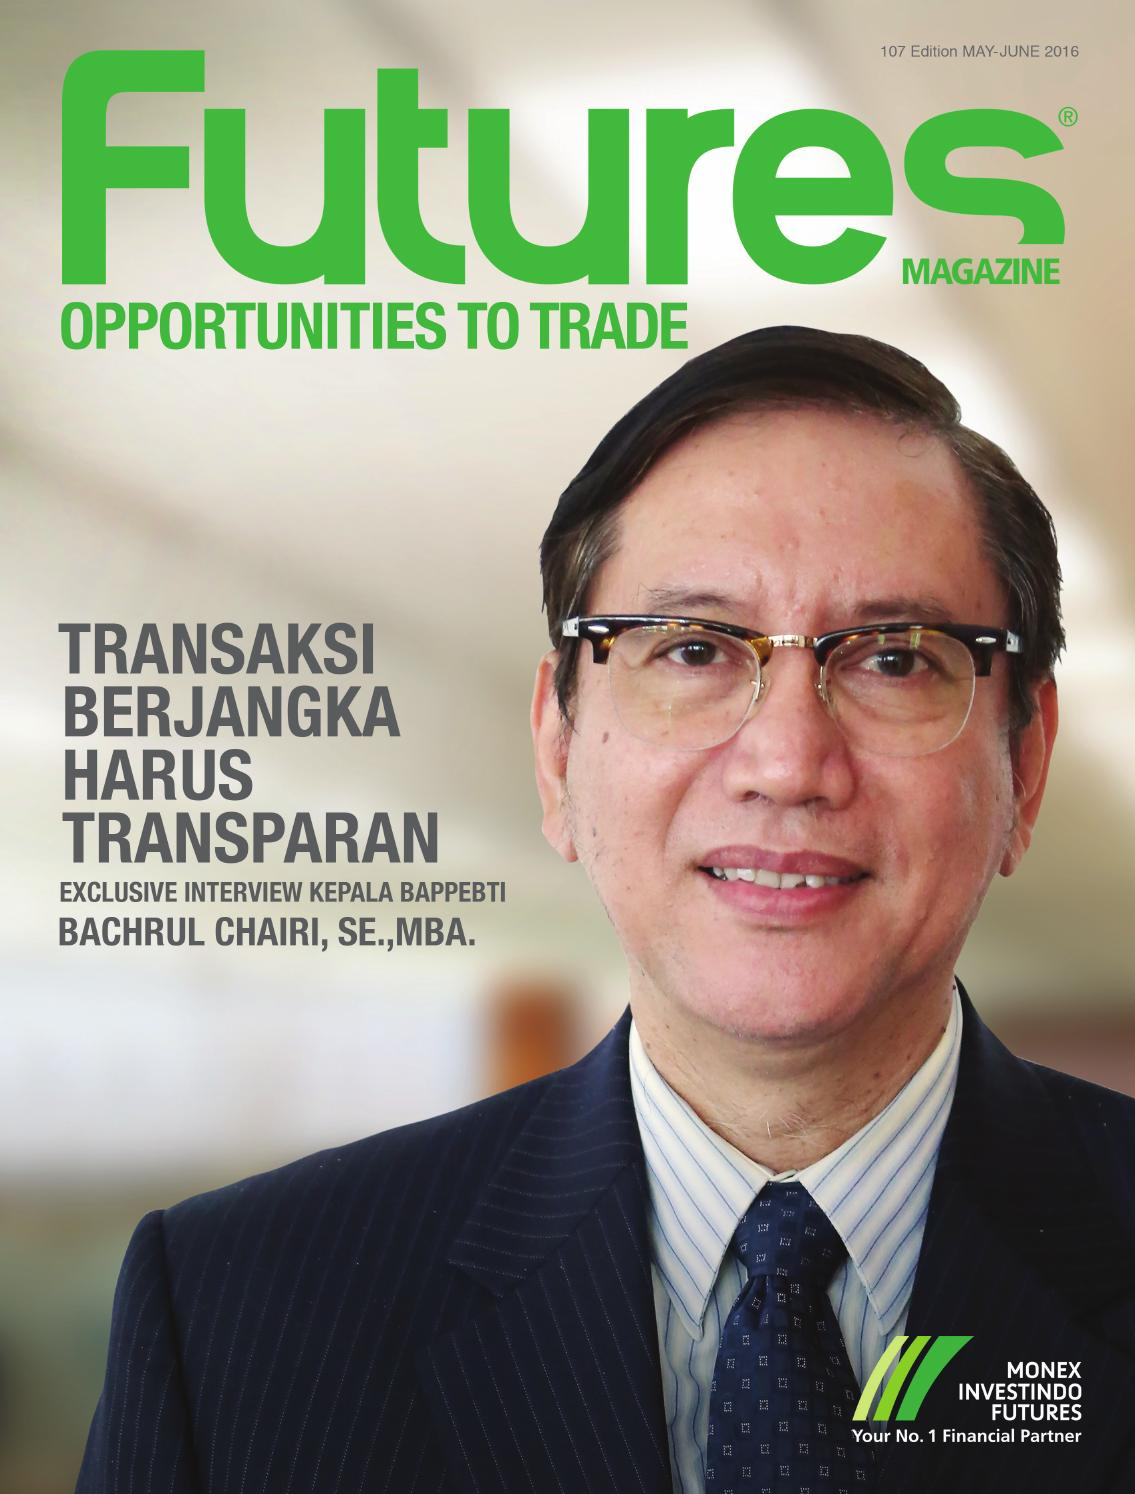 Futures Magazine Opportunities To Trade 107 Edition May June 2016 Cetakan All Completed By Monex Investindo Futures Issuu